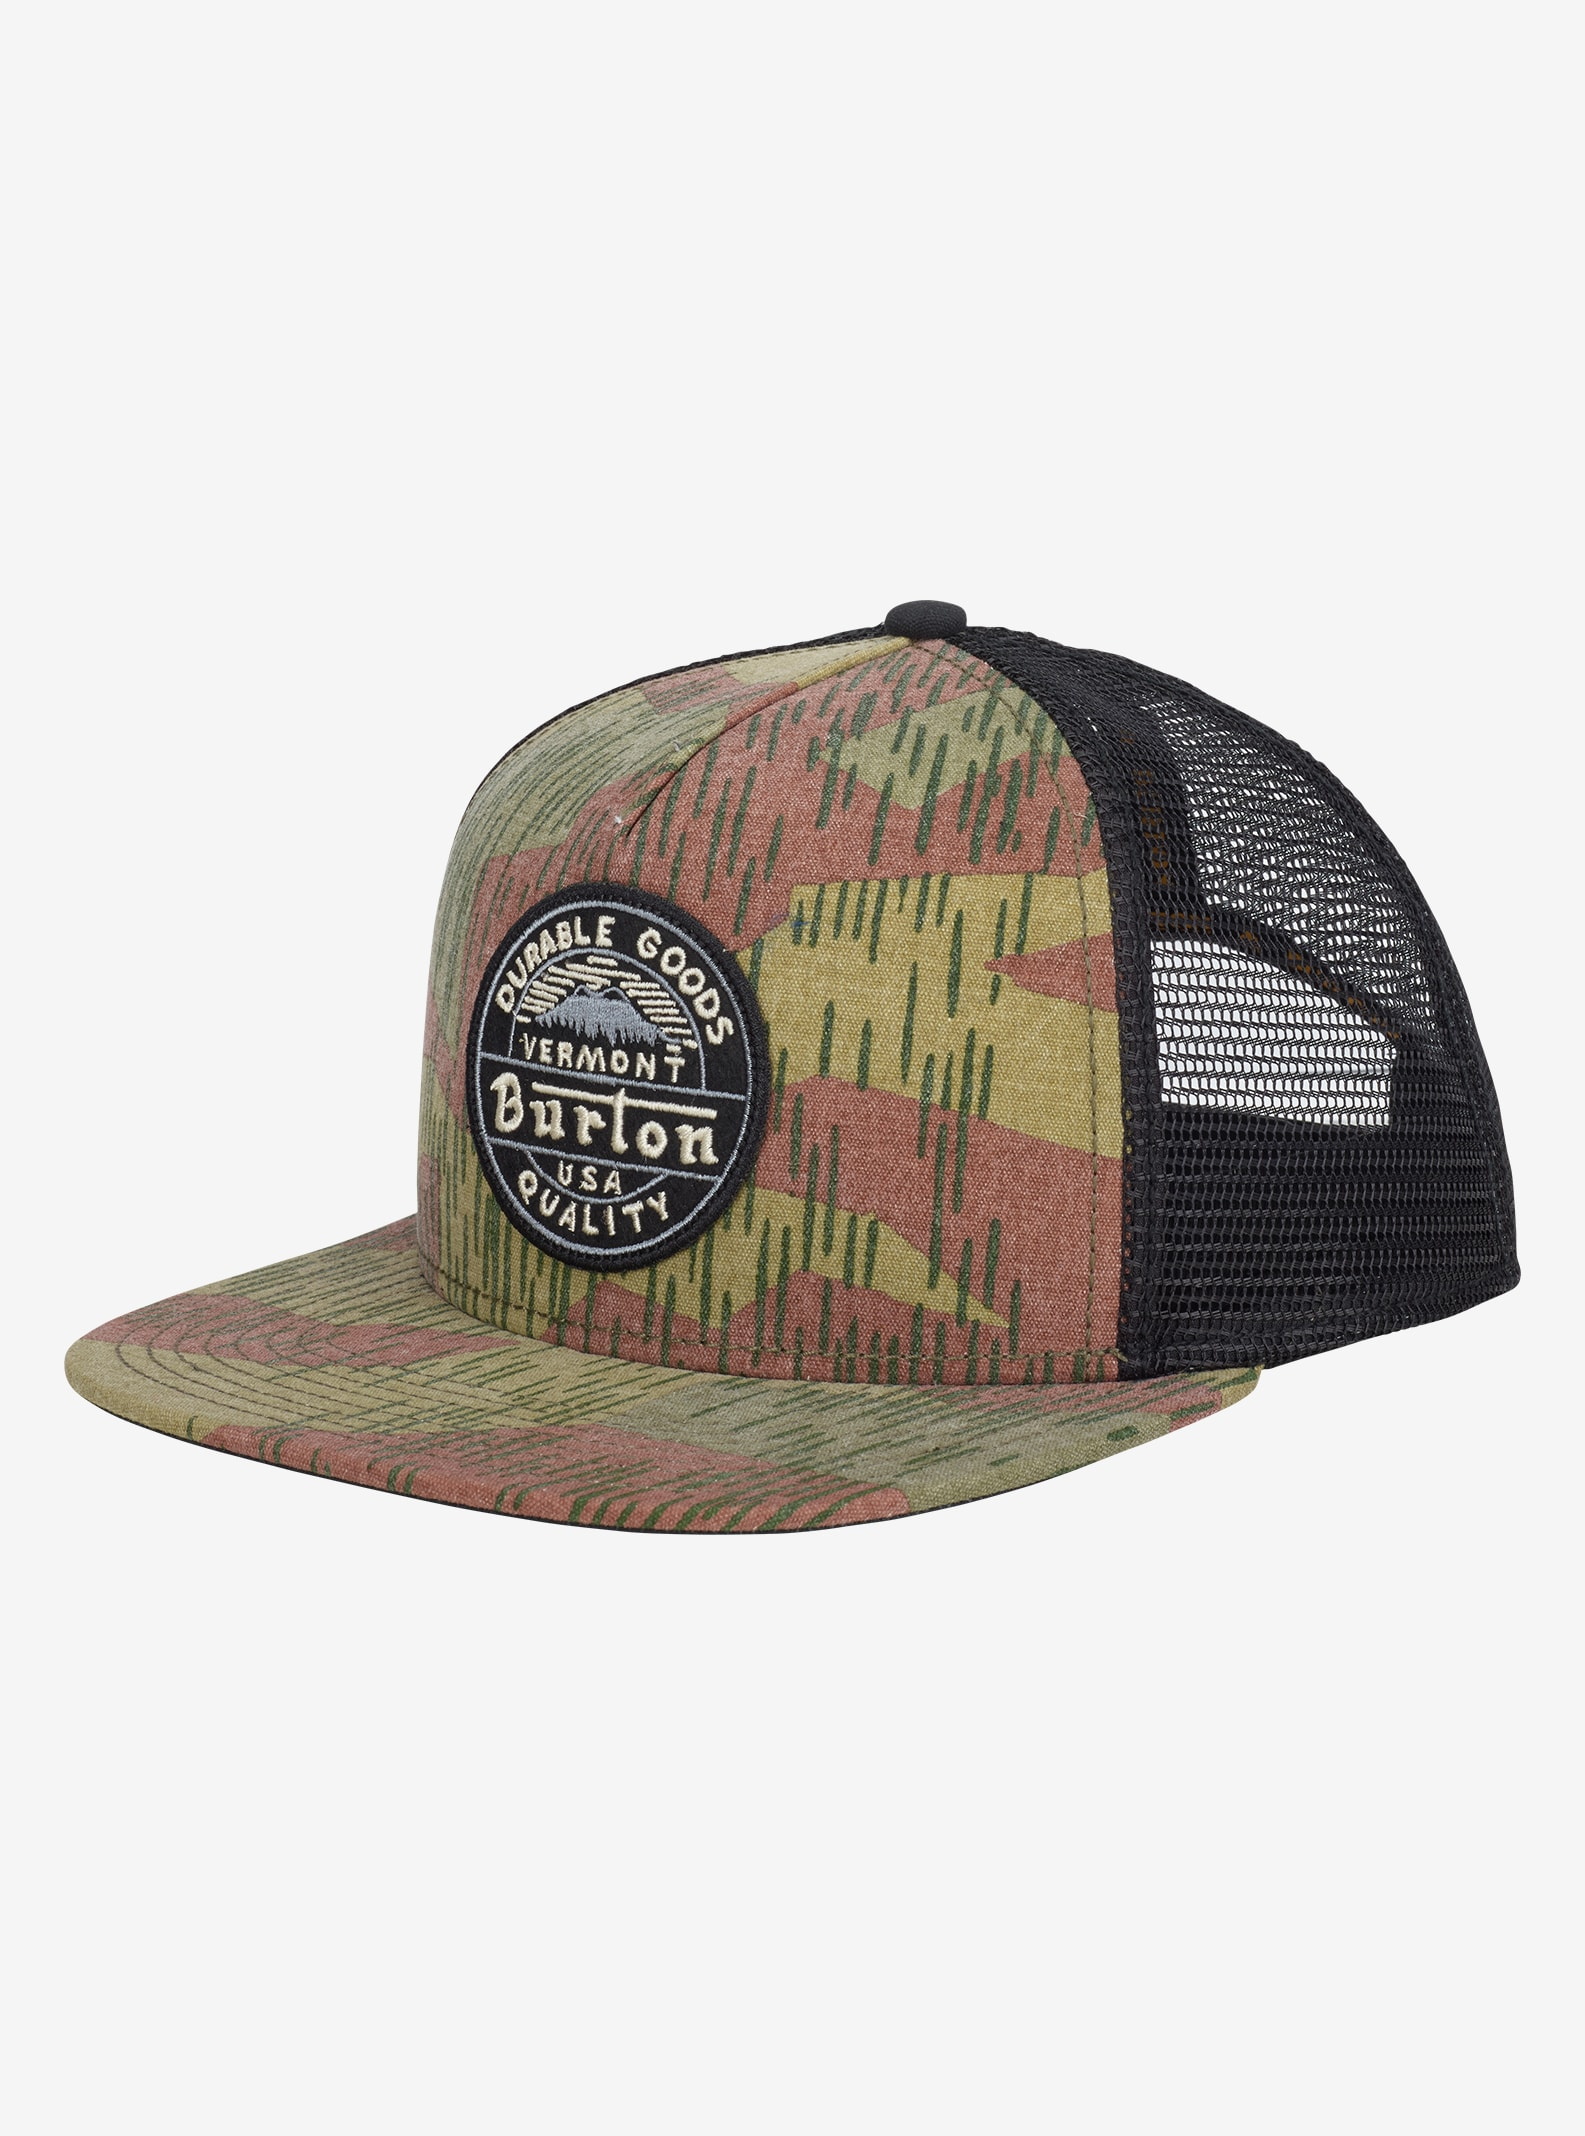 Burton Marble Head Hat shown in Splinter Camo